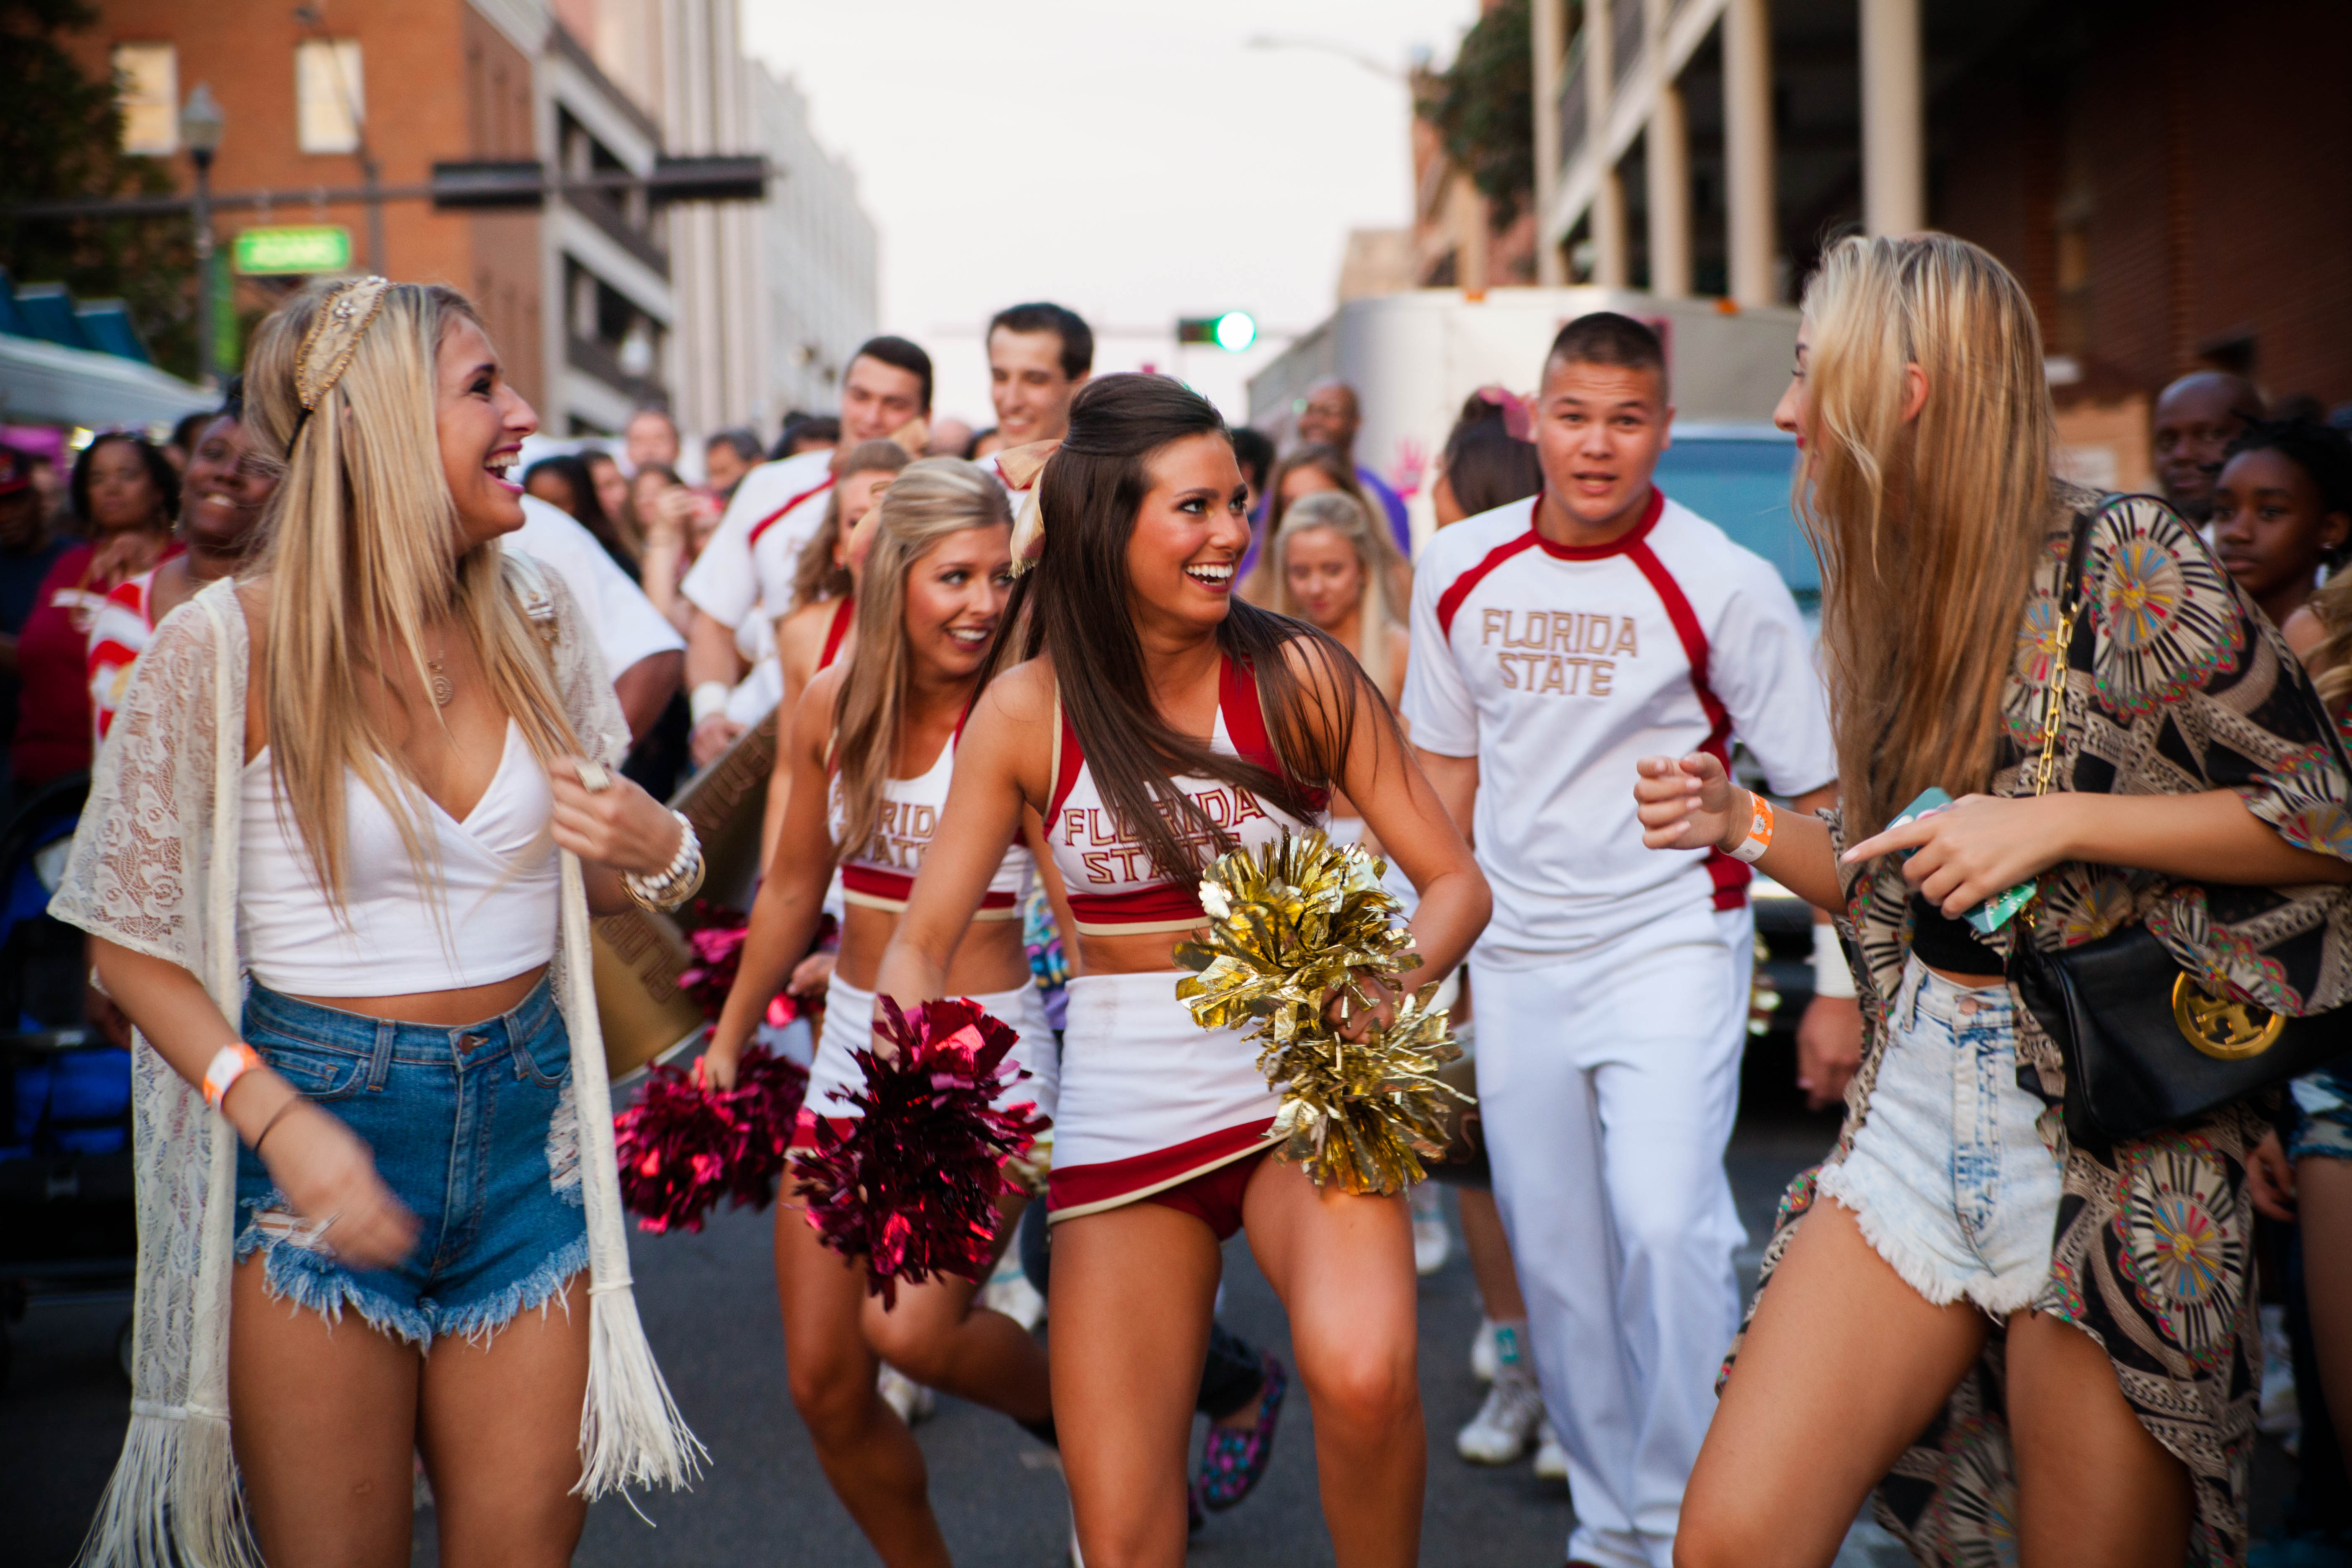 Tallahassee's football party